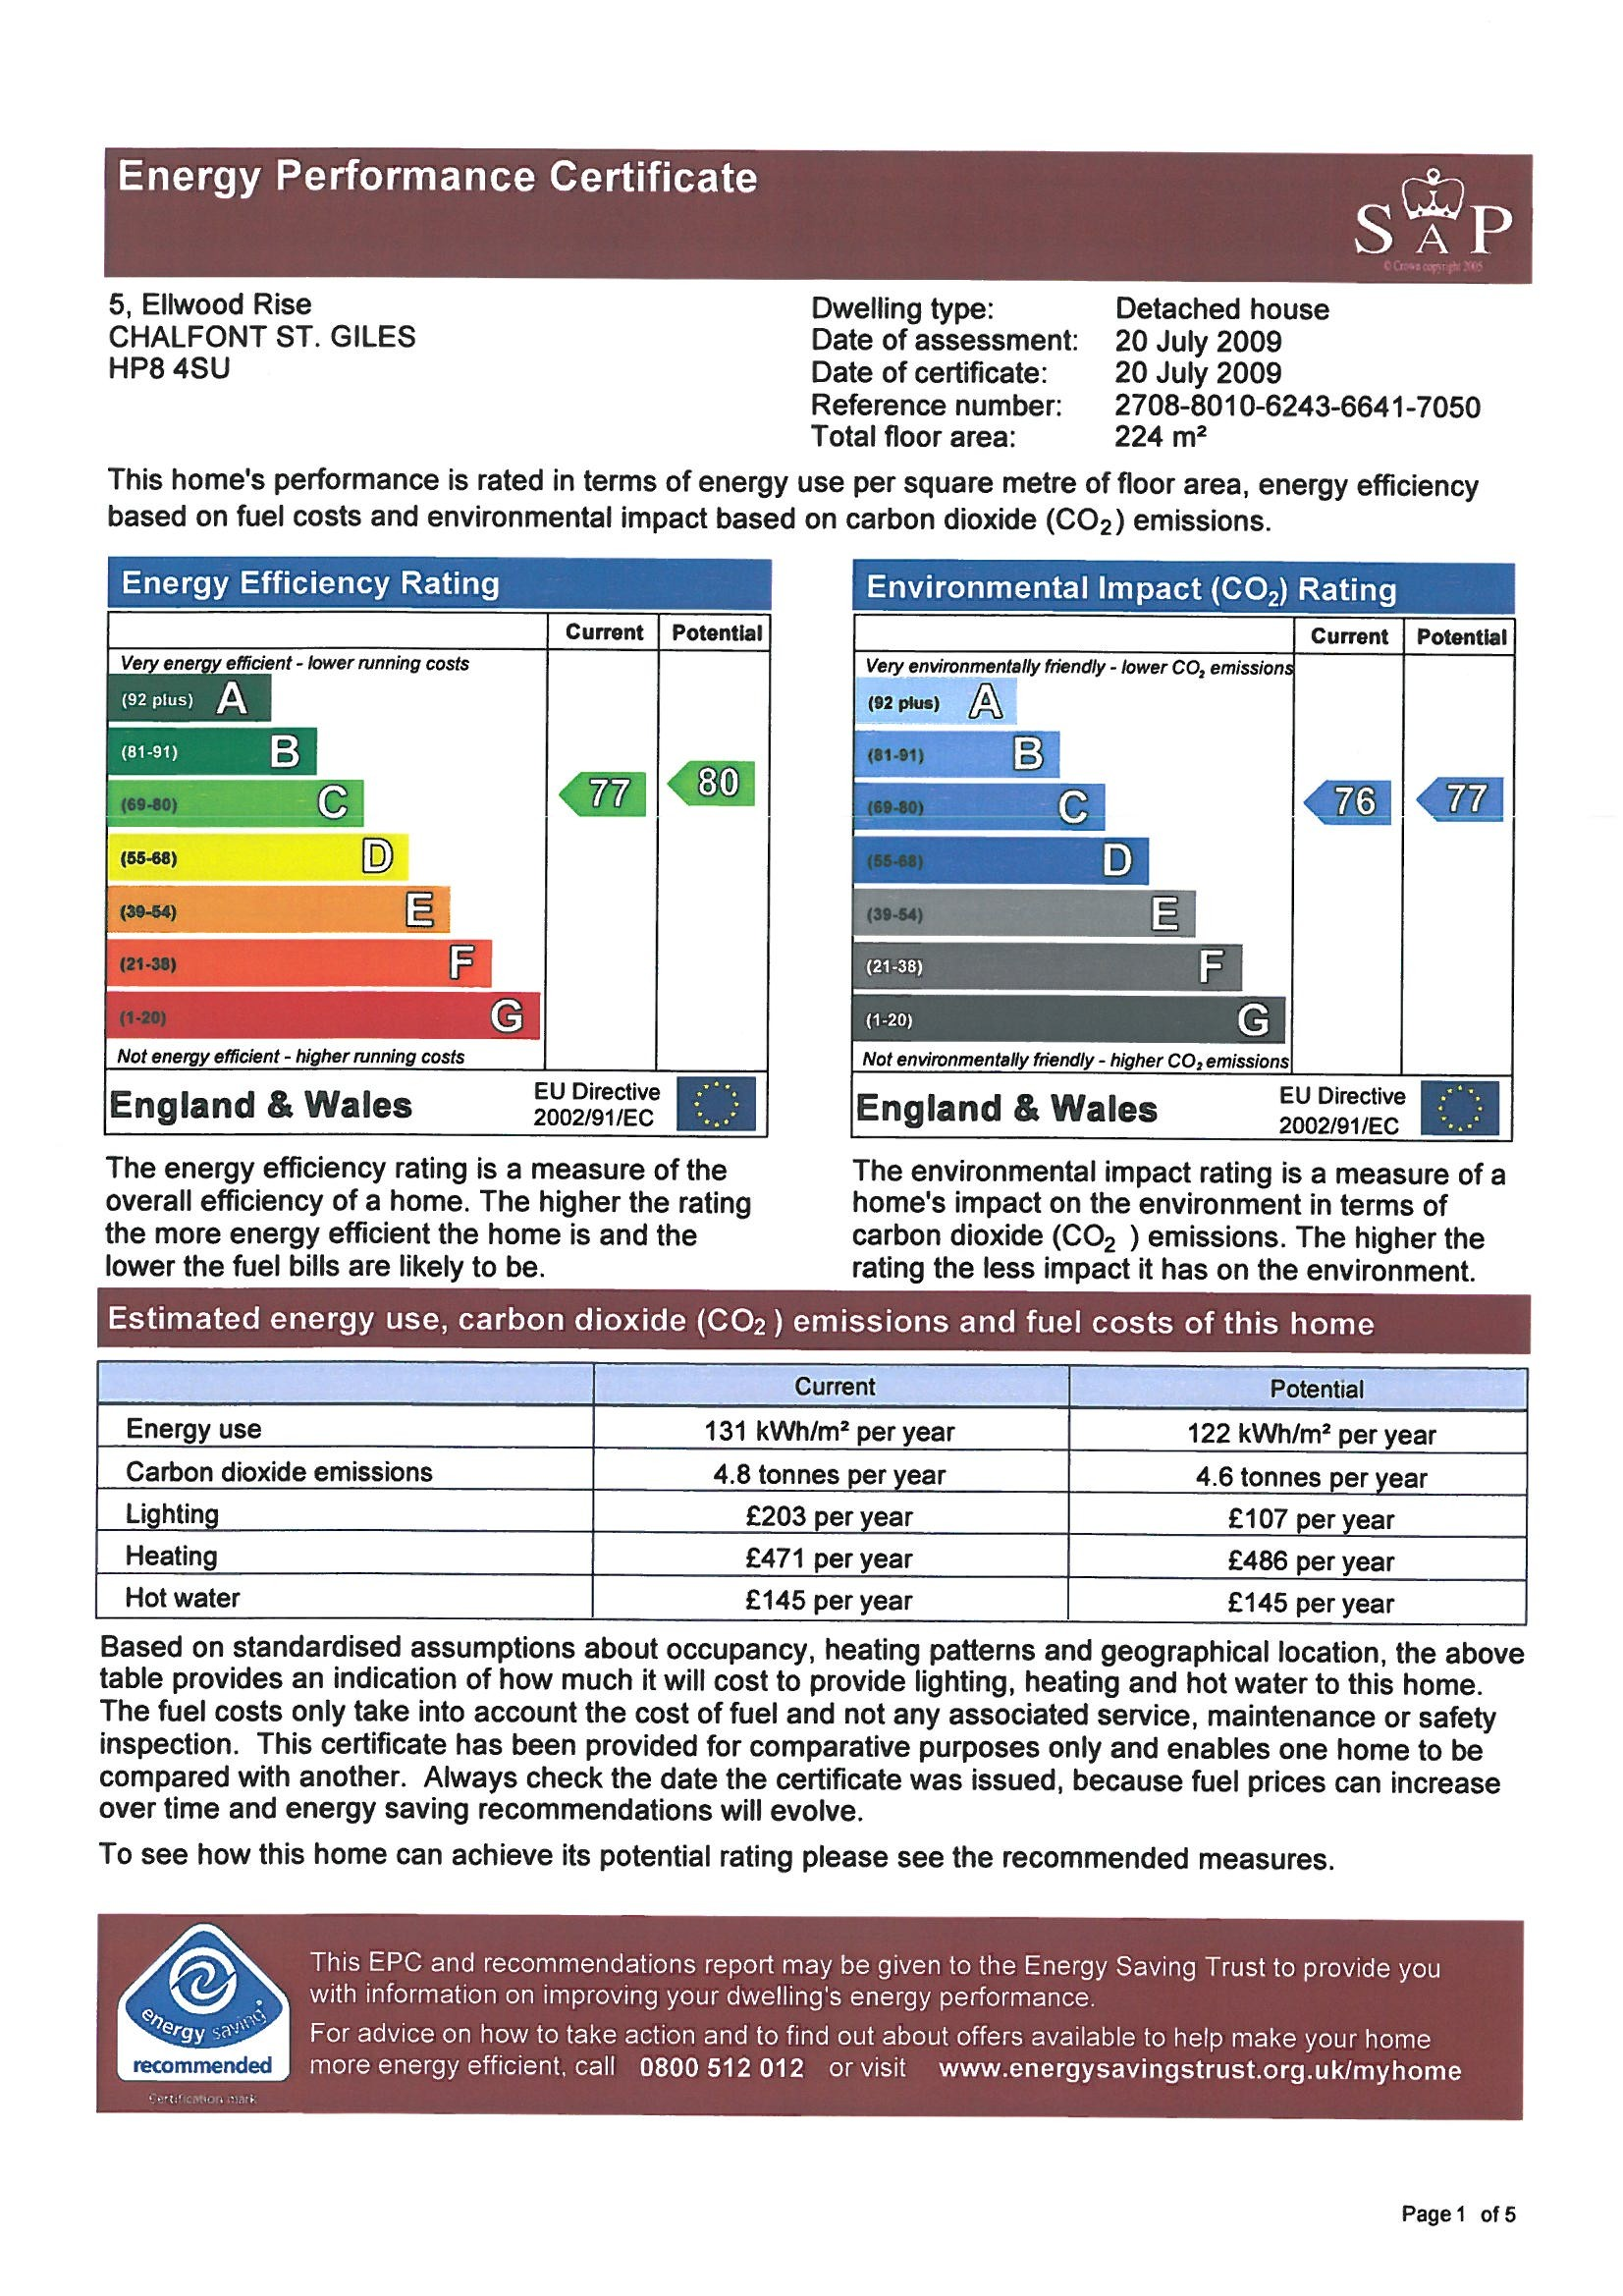 EPC Graph for 5 Ellwood Rise, Chalfont St Giles, Buckinghamshire, HP8 4SU